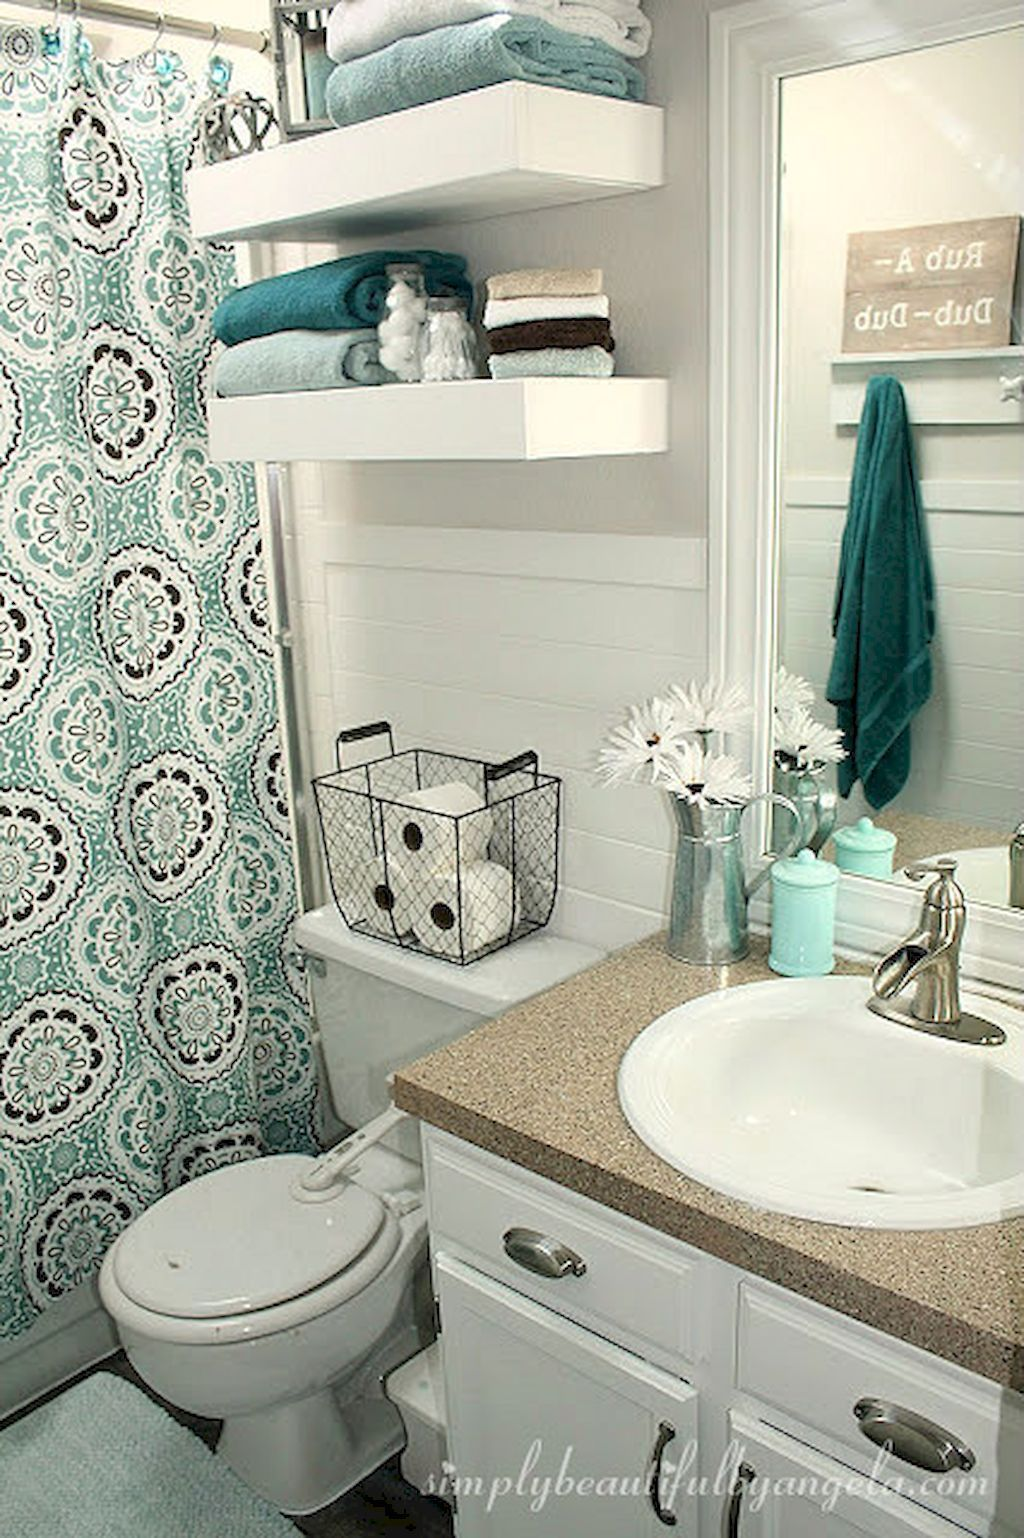 Cool Small Master Bathroom Remodel Ideas On A Budget 69  The Delectable When Remodeling Bathroom Where To Start Decorating Inspiration